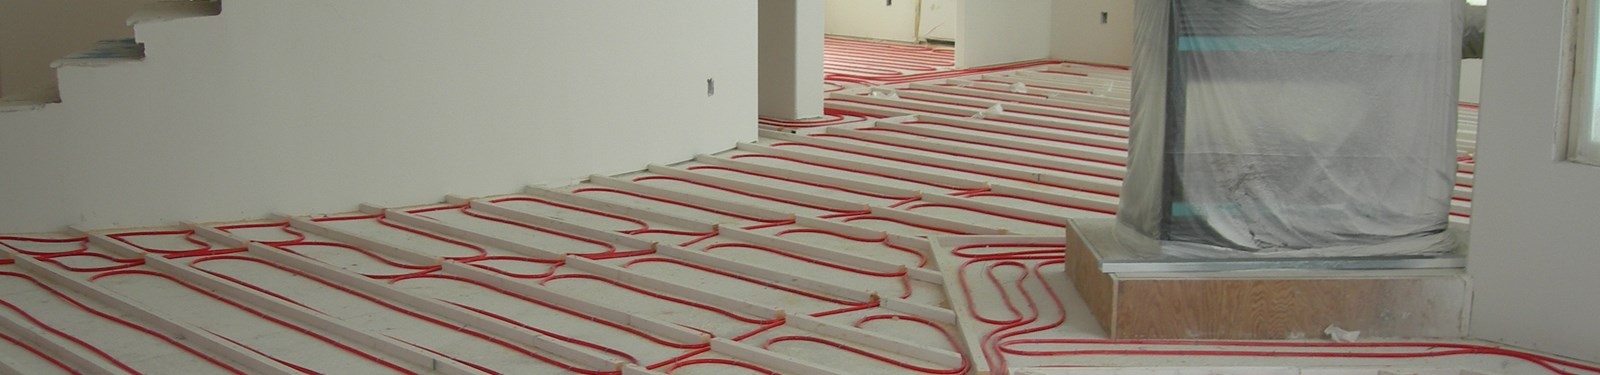 Janes radiant do it yourself radiant floor heating kits install your own radiant heating system do it yourself pex tubing laid between sleeper wood strips prior to a gypsum cement pour solutioingenieria Choice Image